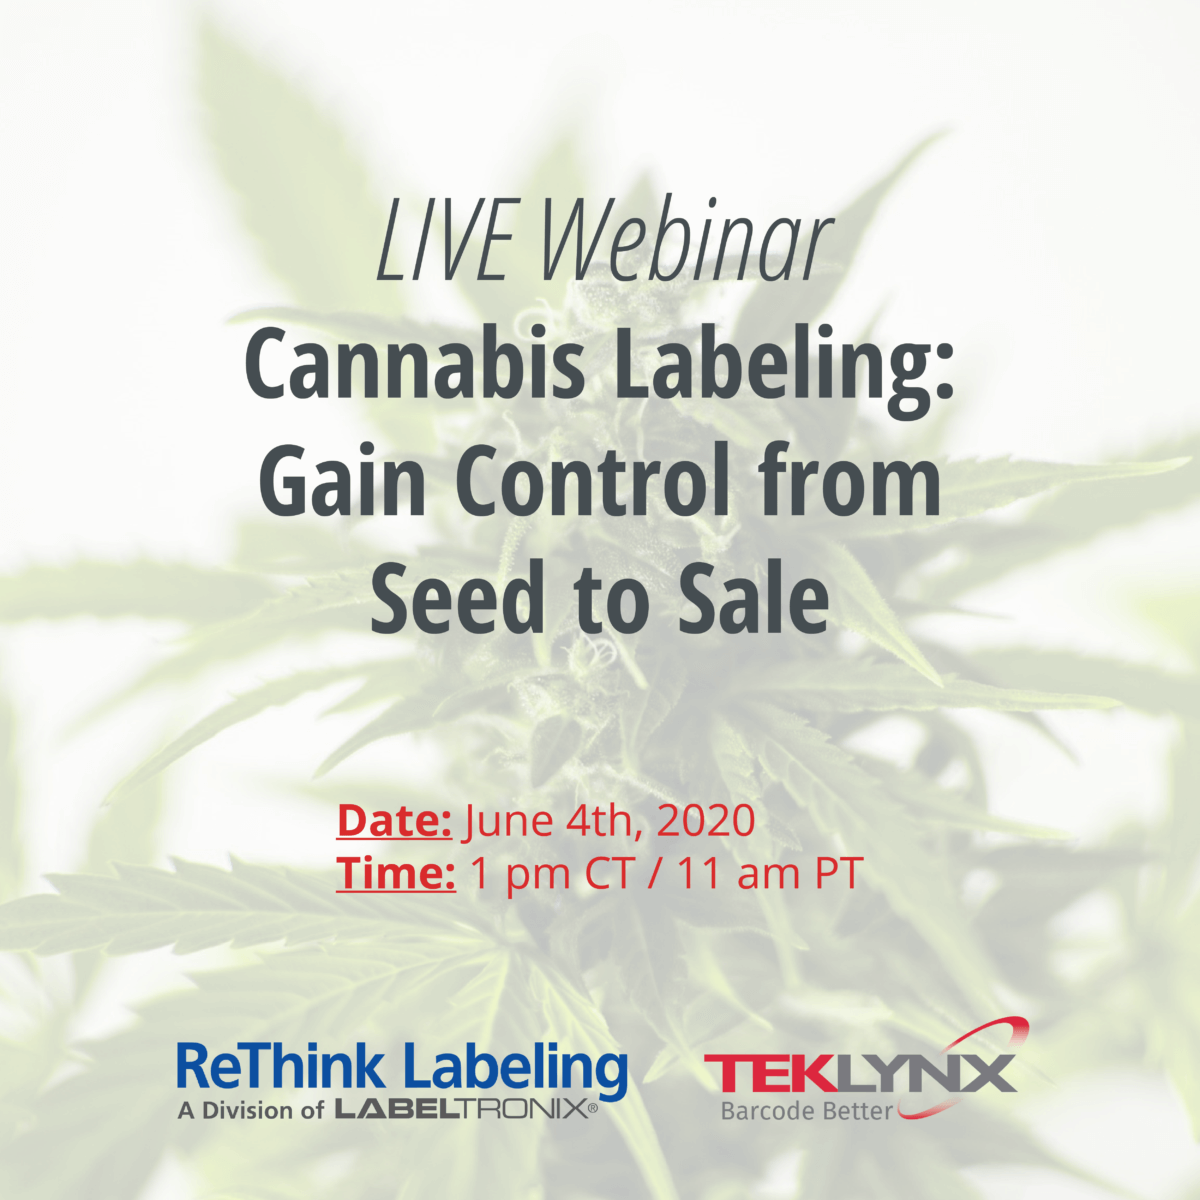 Cannabis Labeling Webinar to Explore Best Practices and Demo Solutions